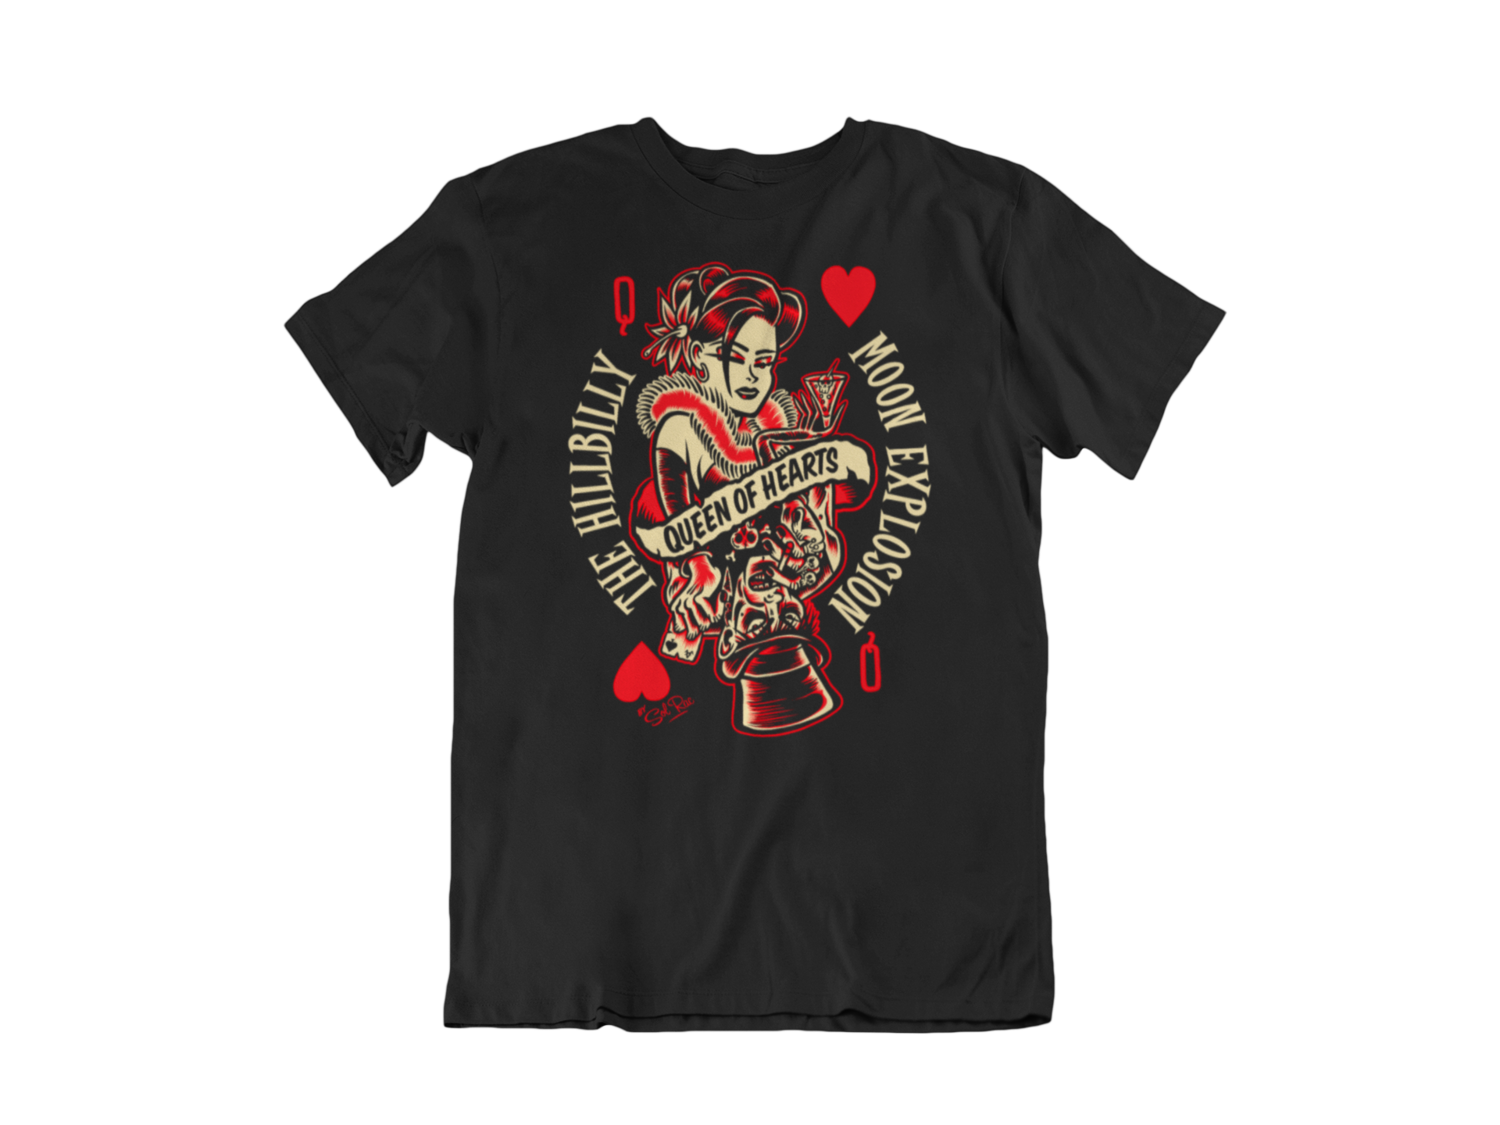 """HILLBILLY MOON EXPLOSION """"Queen of hearts"""" tshirt for MEN by Solrac"""